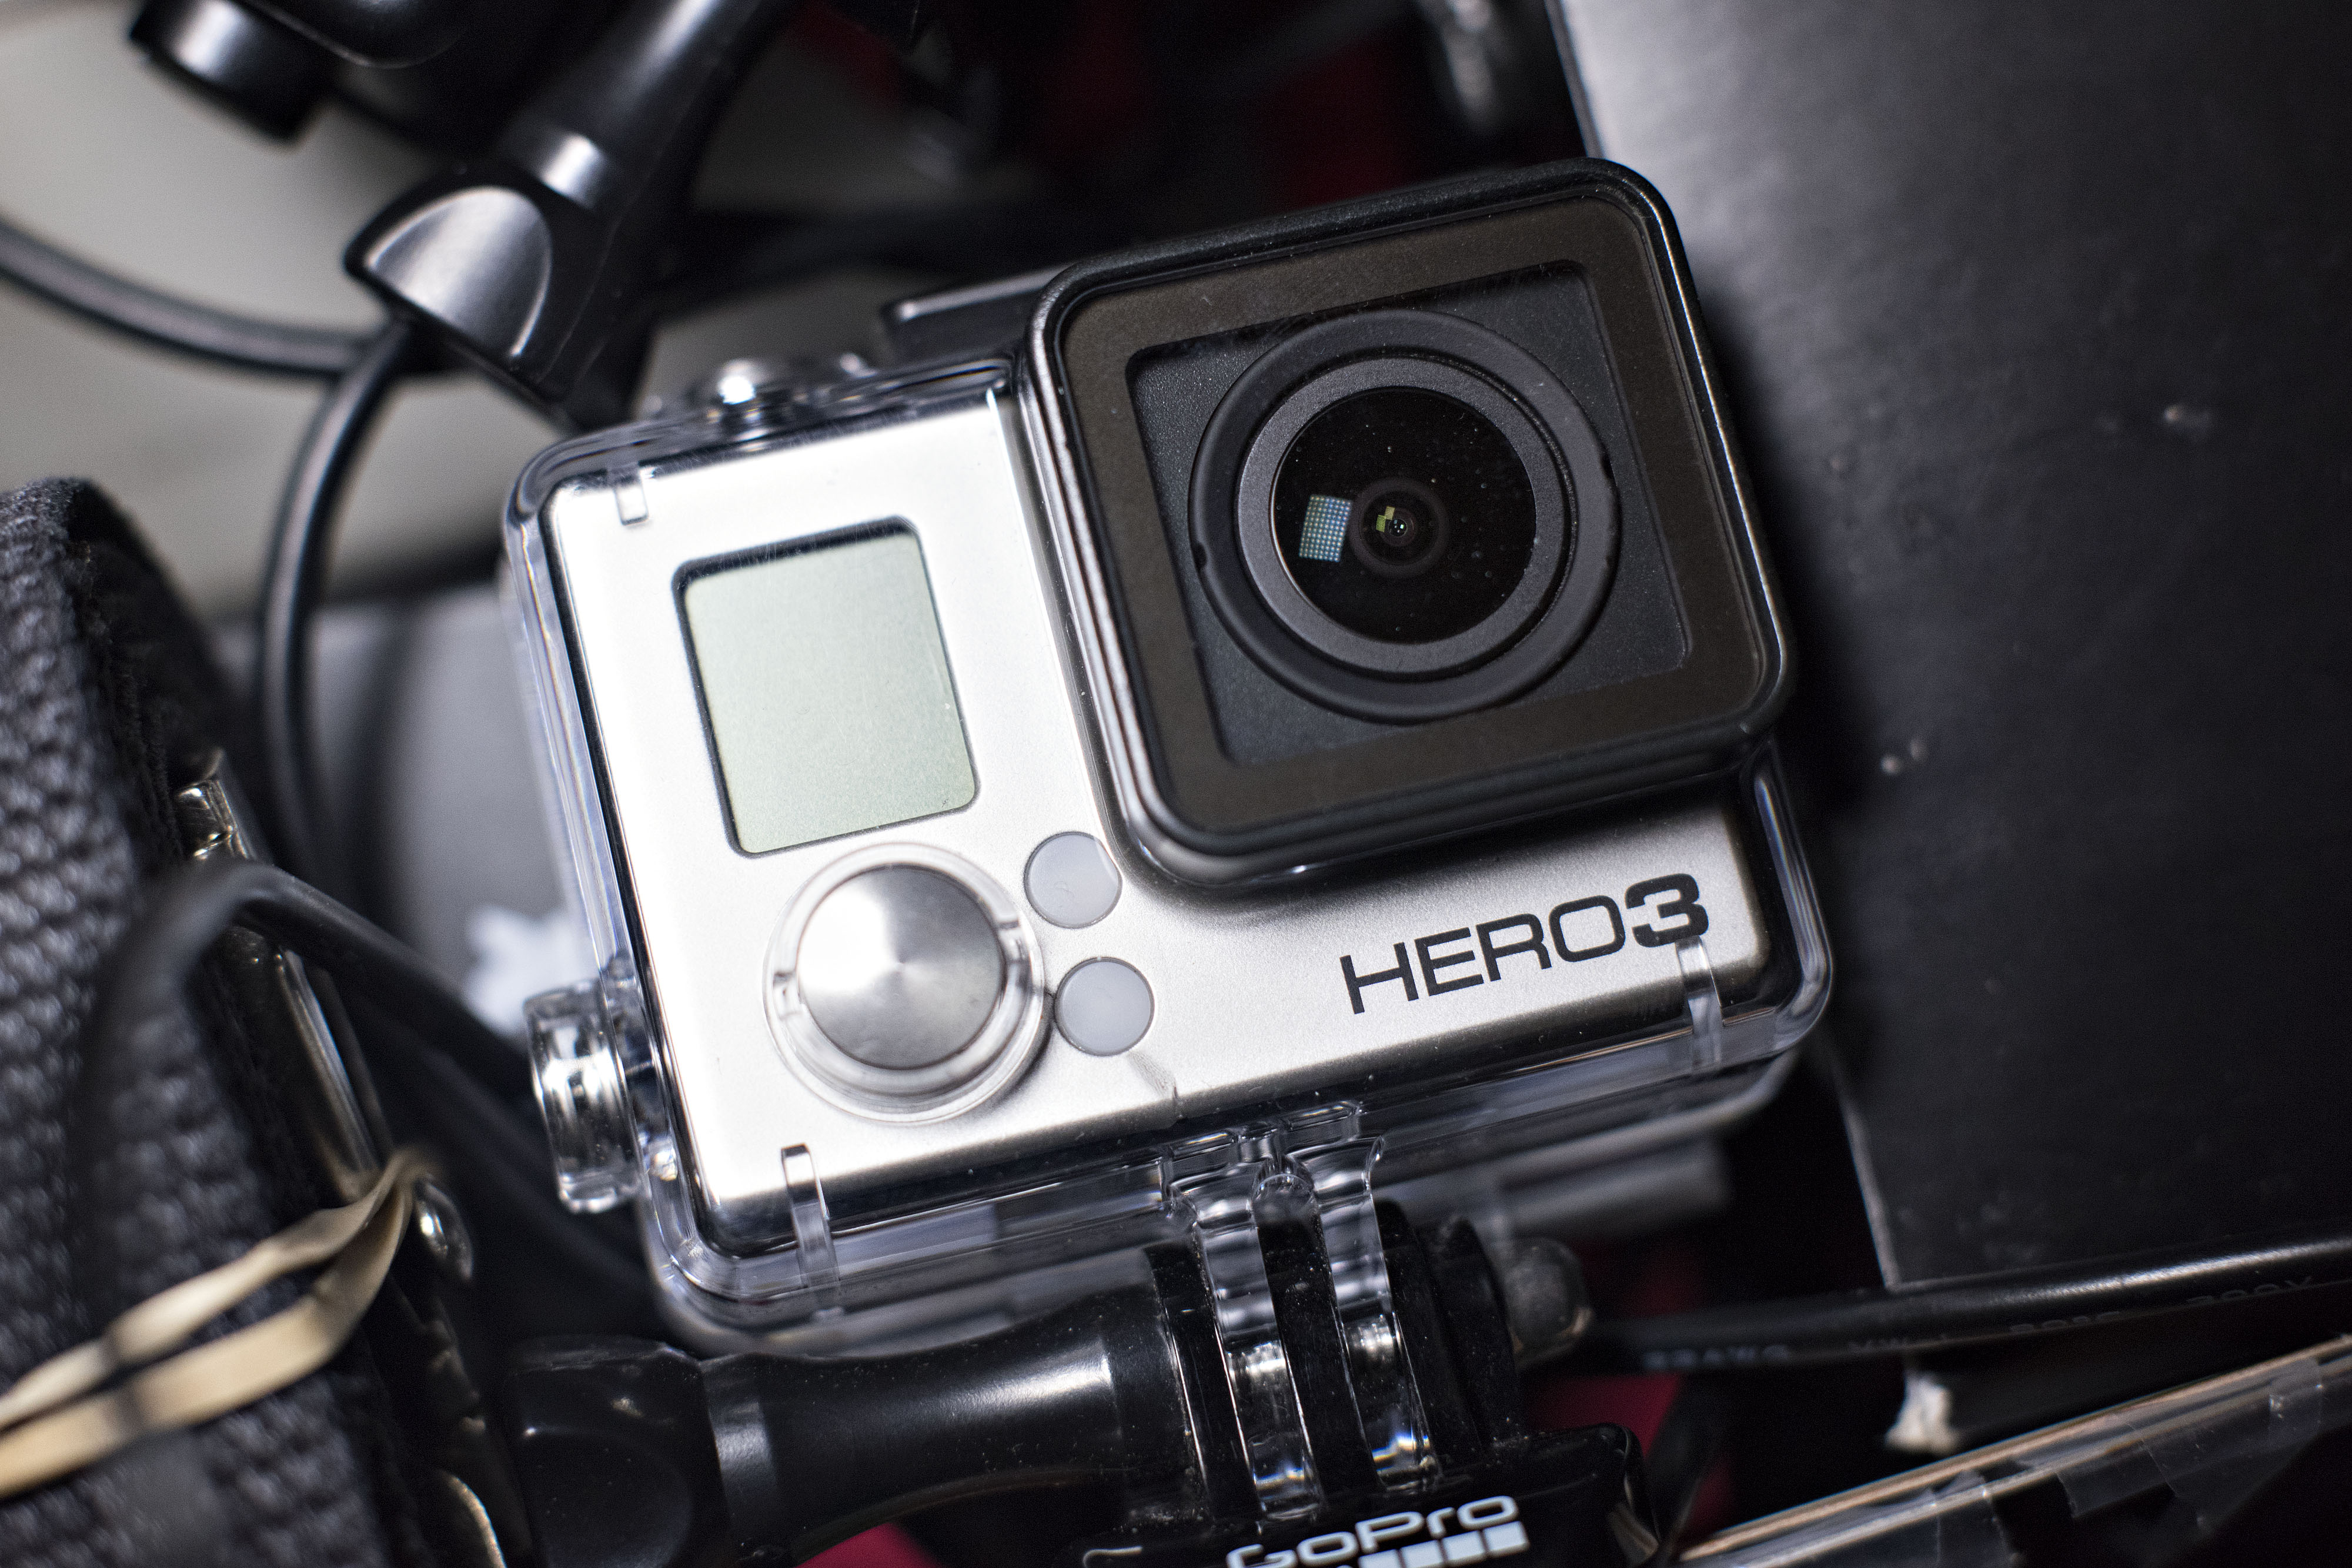 A GoPro Inc. HERO3 camera is arranged for a photograph in Tiskilwa, Illinois, U.S., on Thursday, April 23, 2015.